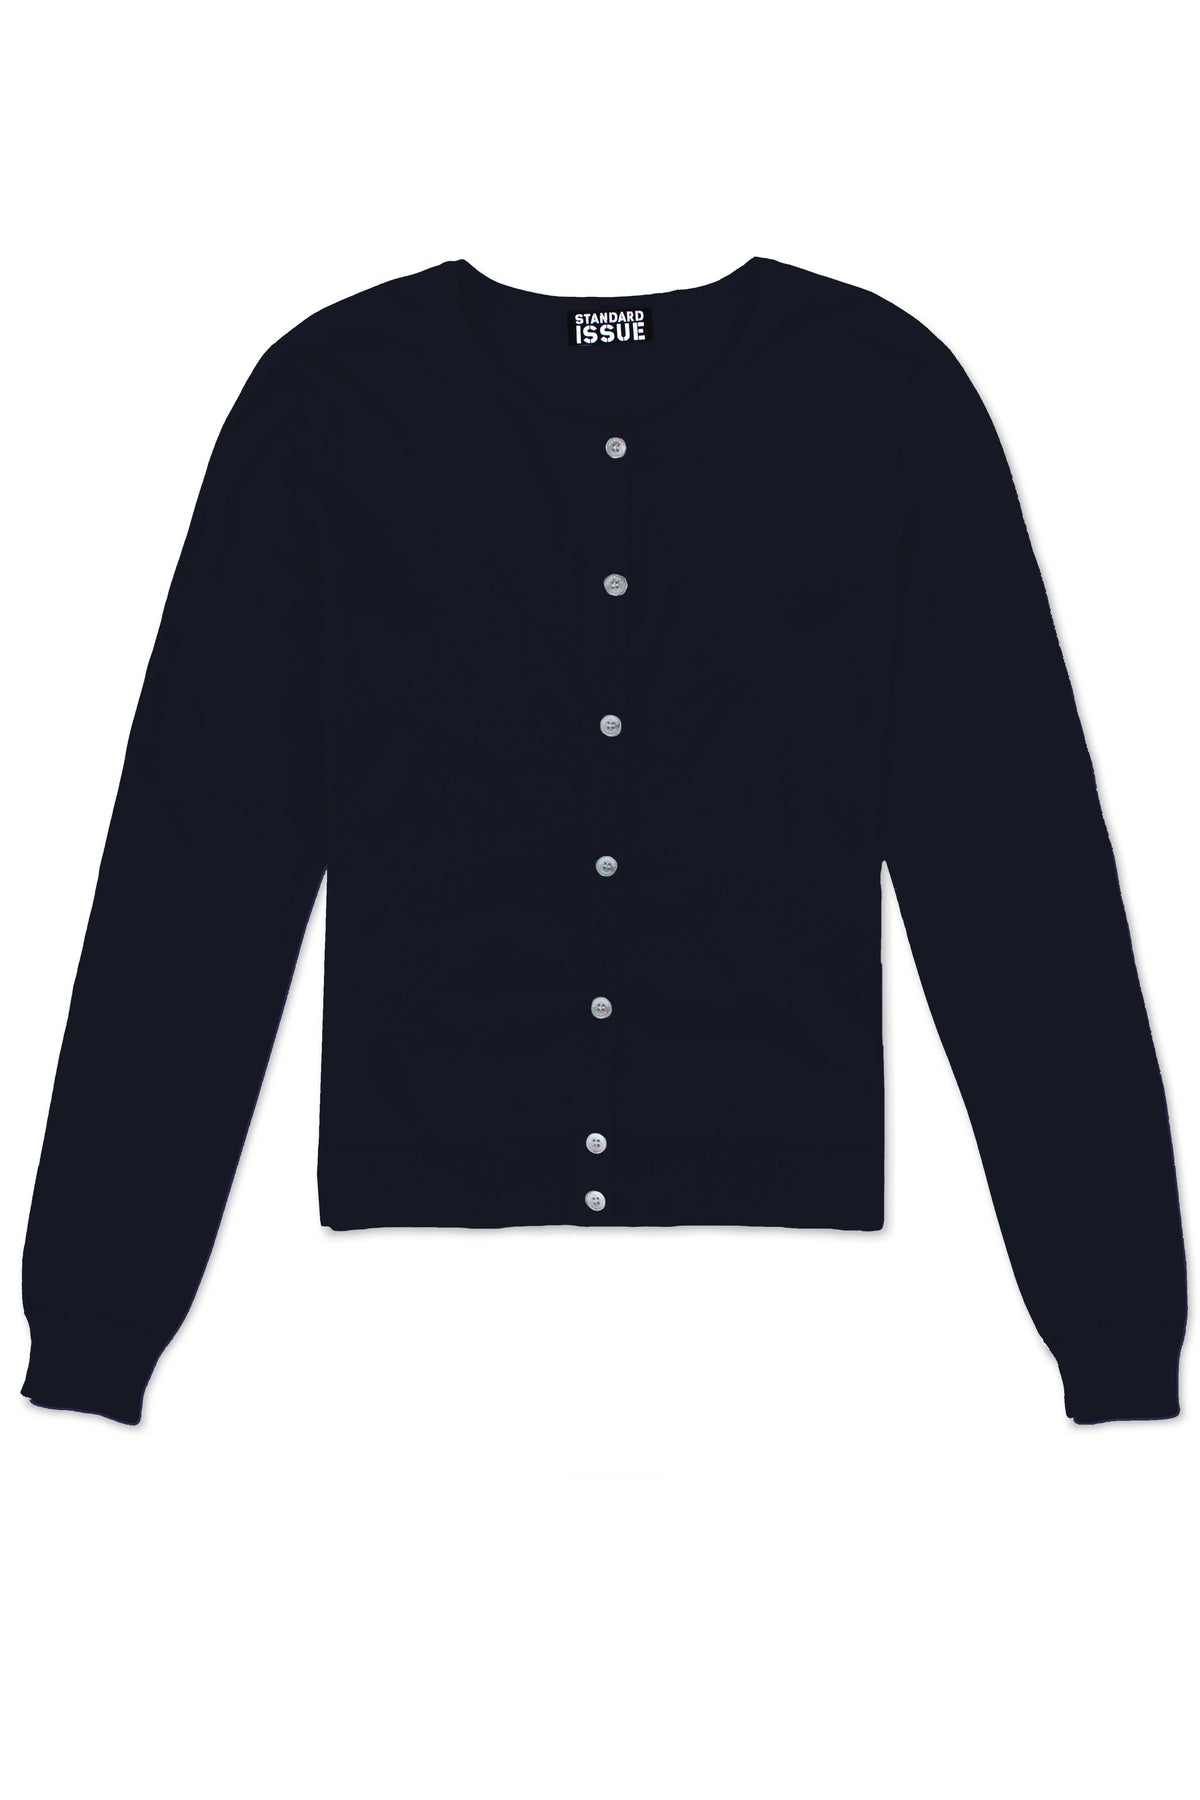 Standard Issue crop crew cardi Knitwear Stockists Auckland Made in New Zealand NZ Designer Clothing